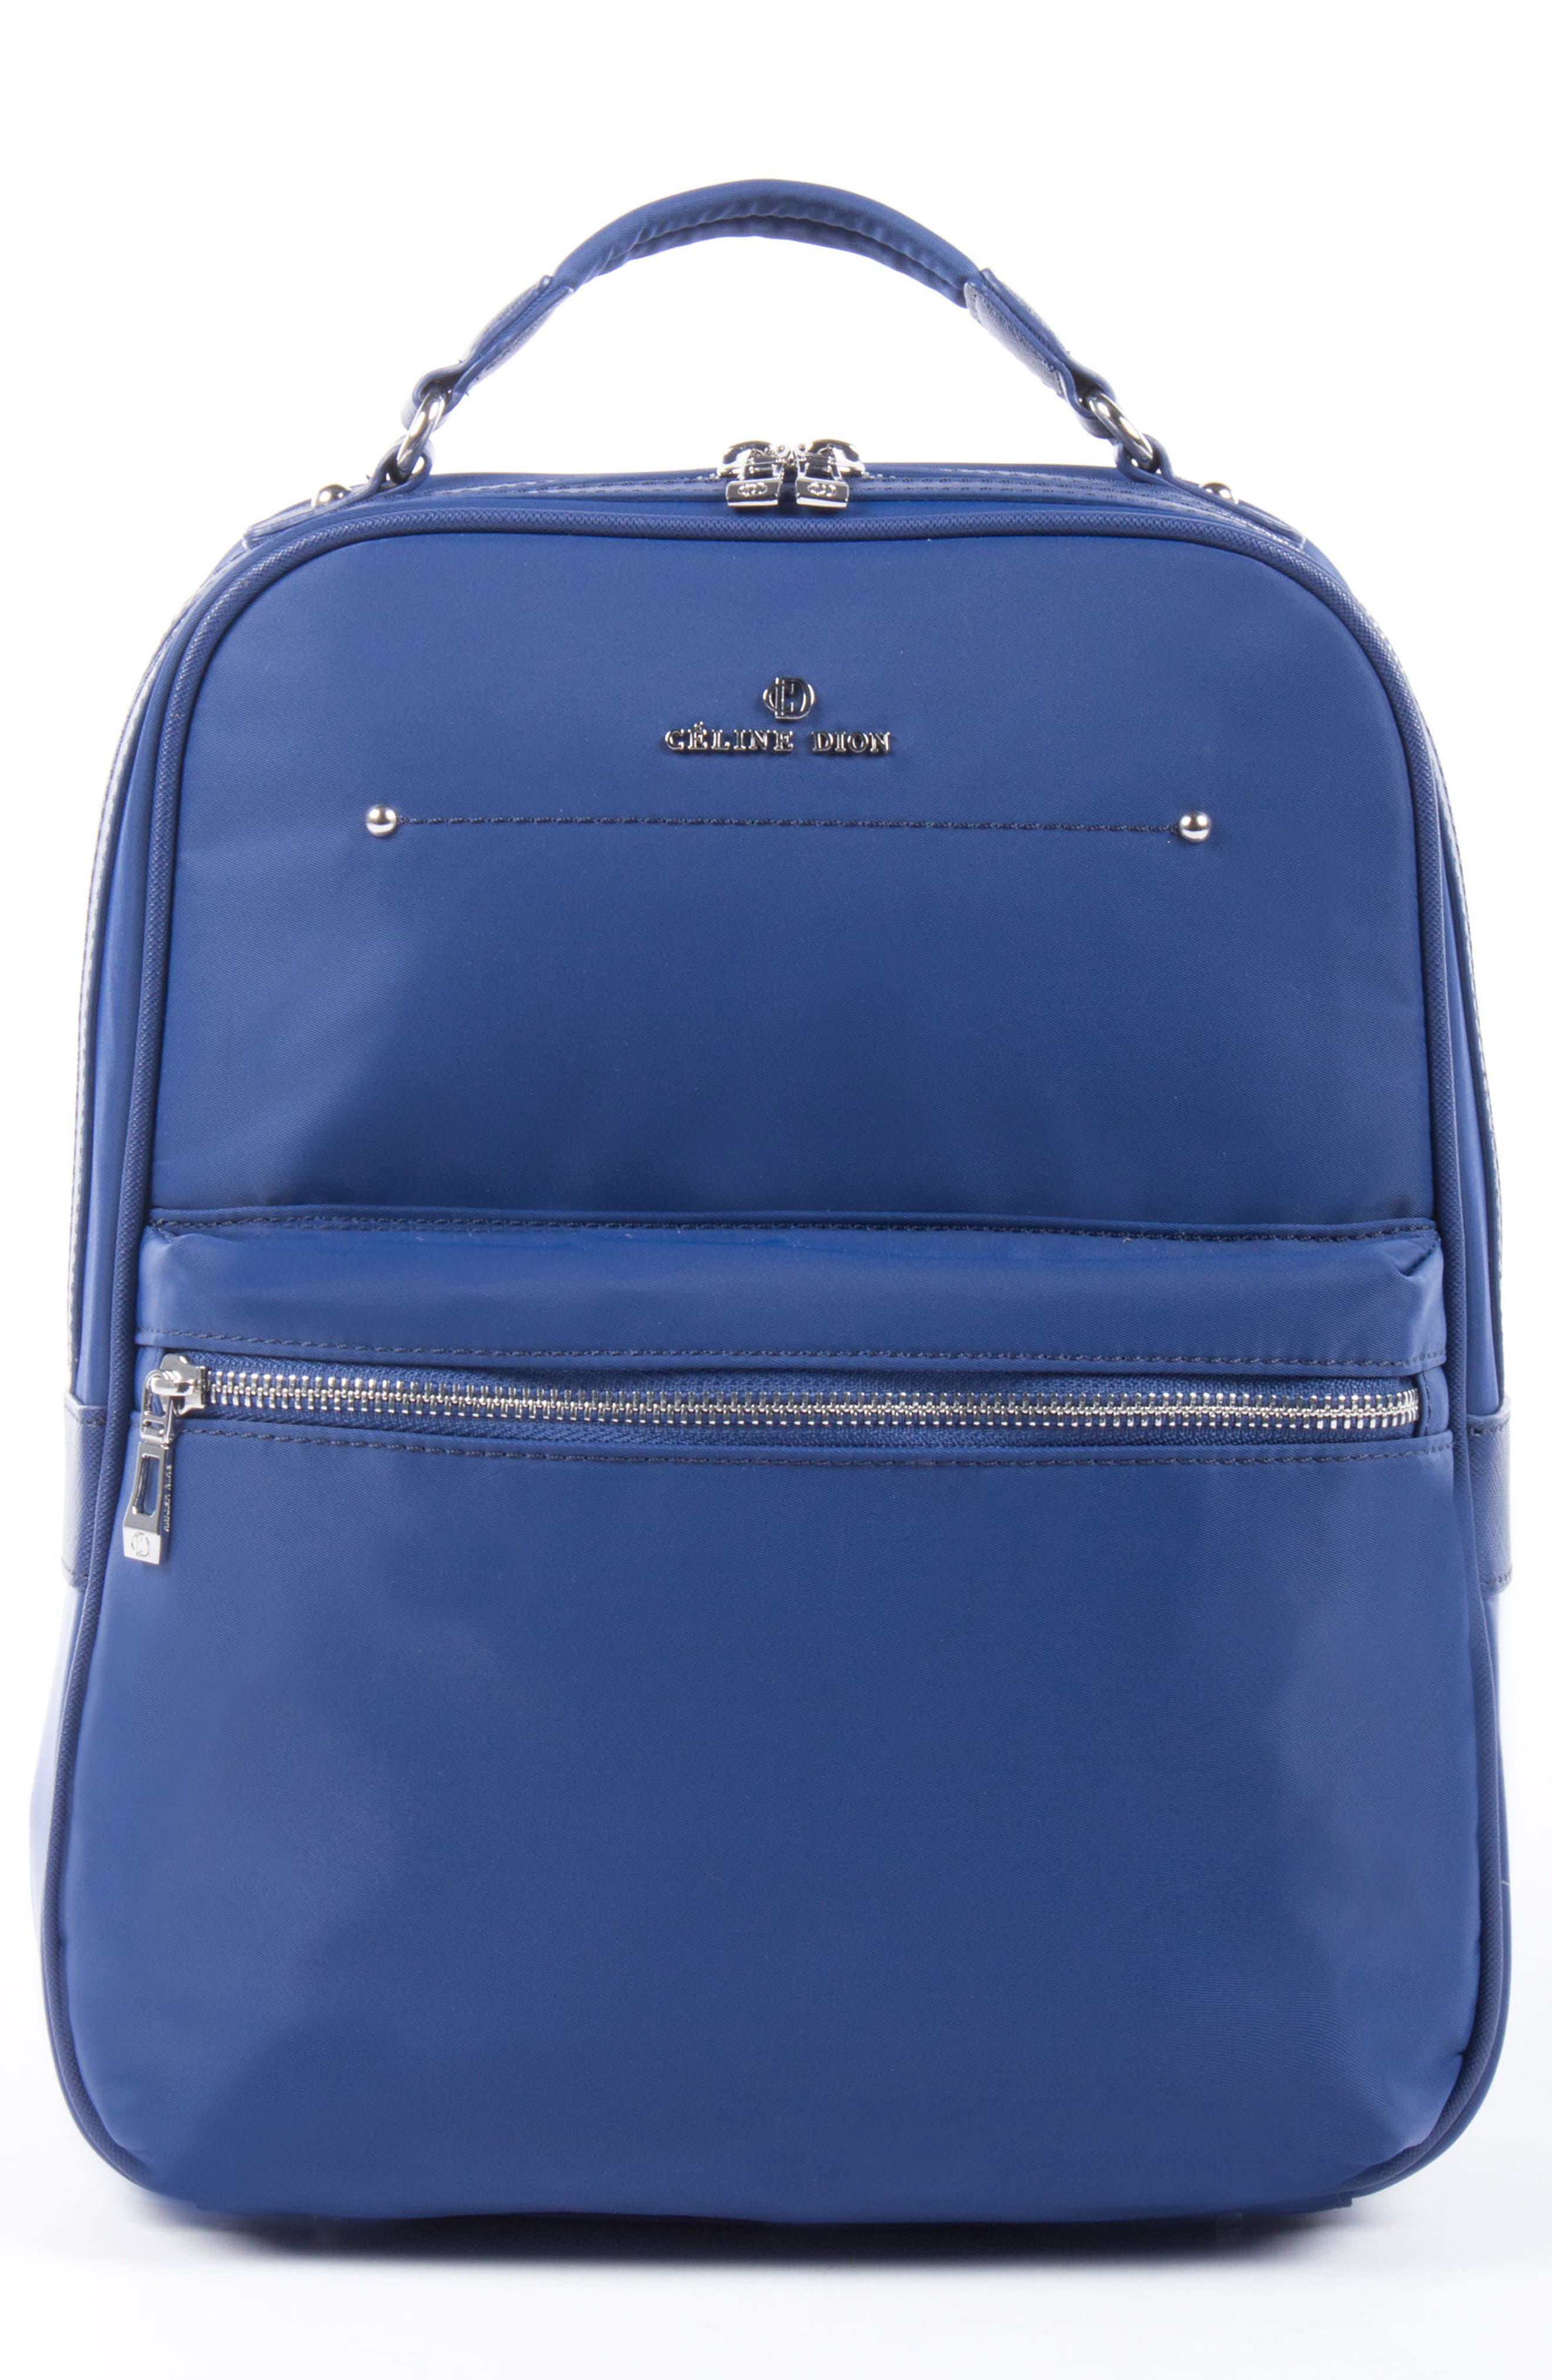 Céline Dion Presto Nylon Backpack,                             Main thumbnail 1, color,                             Blue